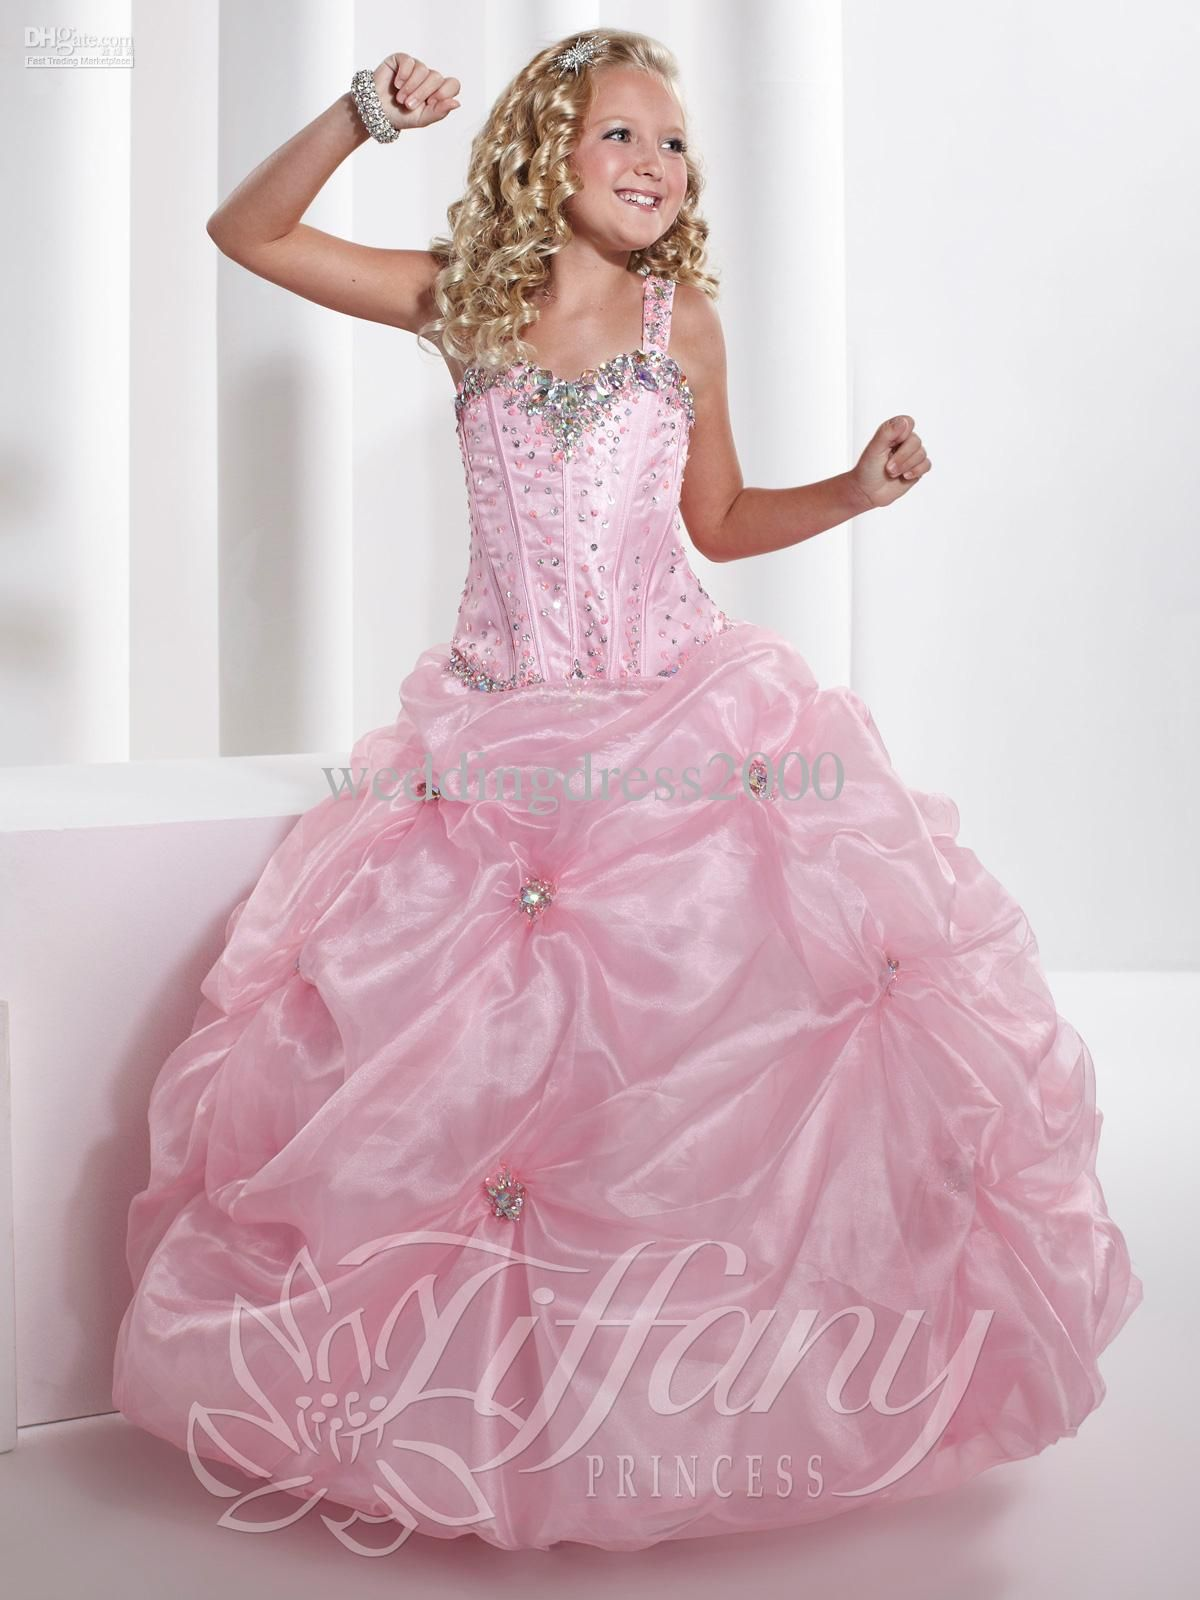 Seoproductname Things I Love Beauty Pageant Dresses Pretty